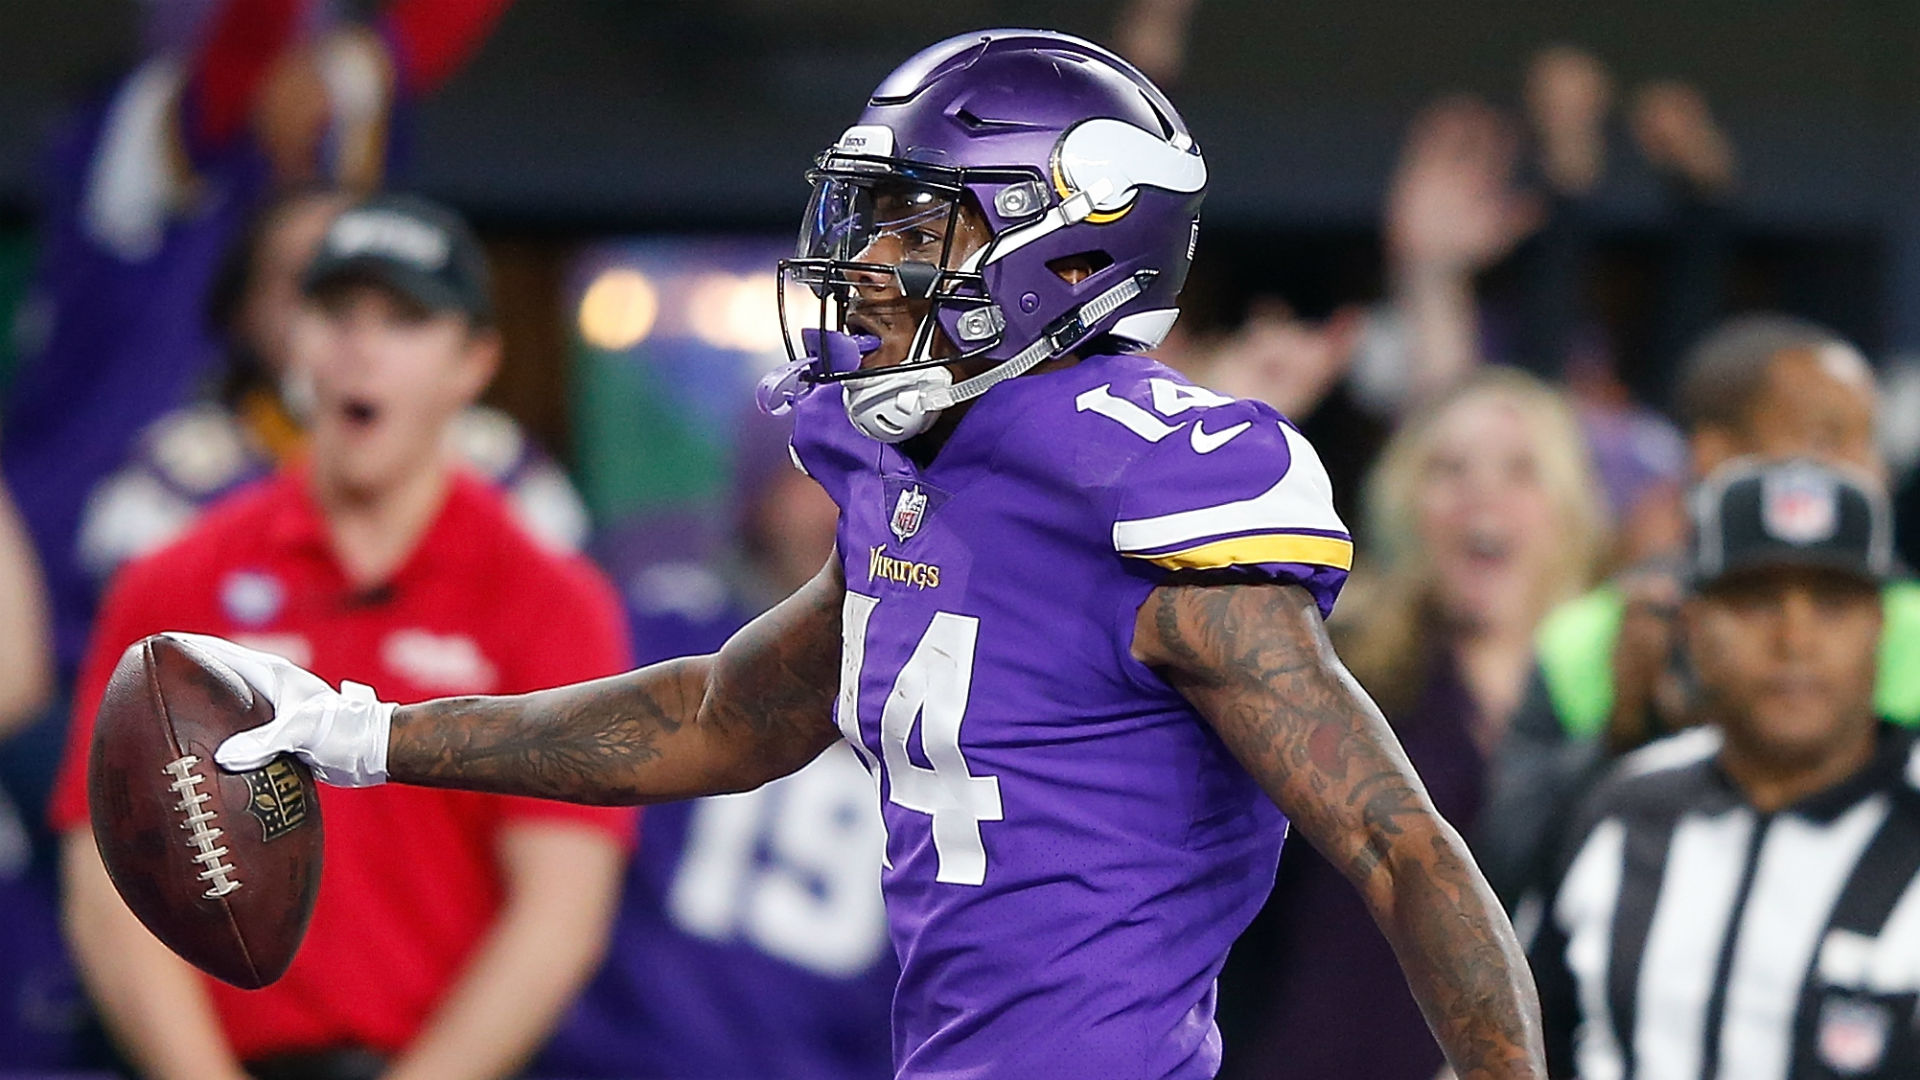 Stefon Diggs has not been dealt to 'Skins, report says ...